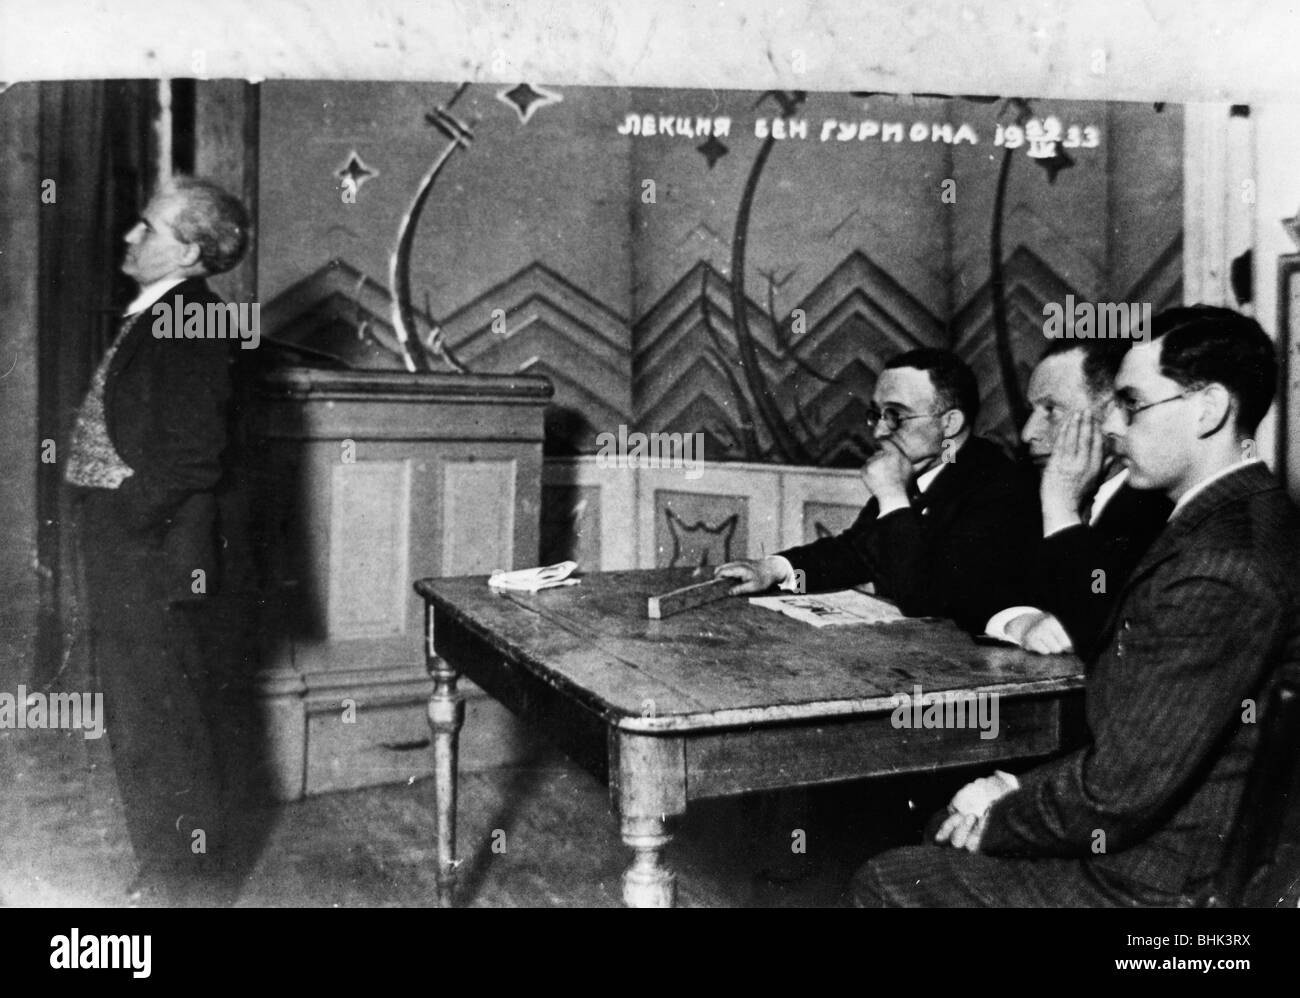 David Ben Gurion (1886-1973) bringing news from Palestine to a Zionist meeting in Lithuania, 1933. - Stock Image